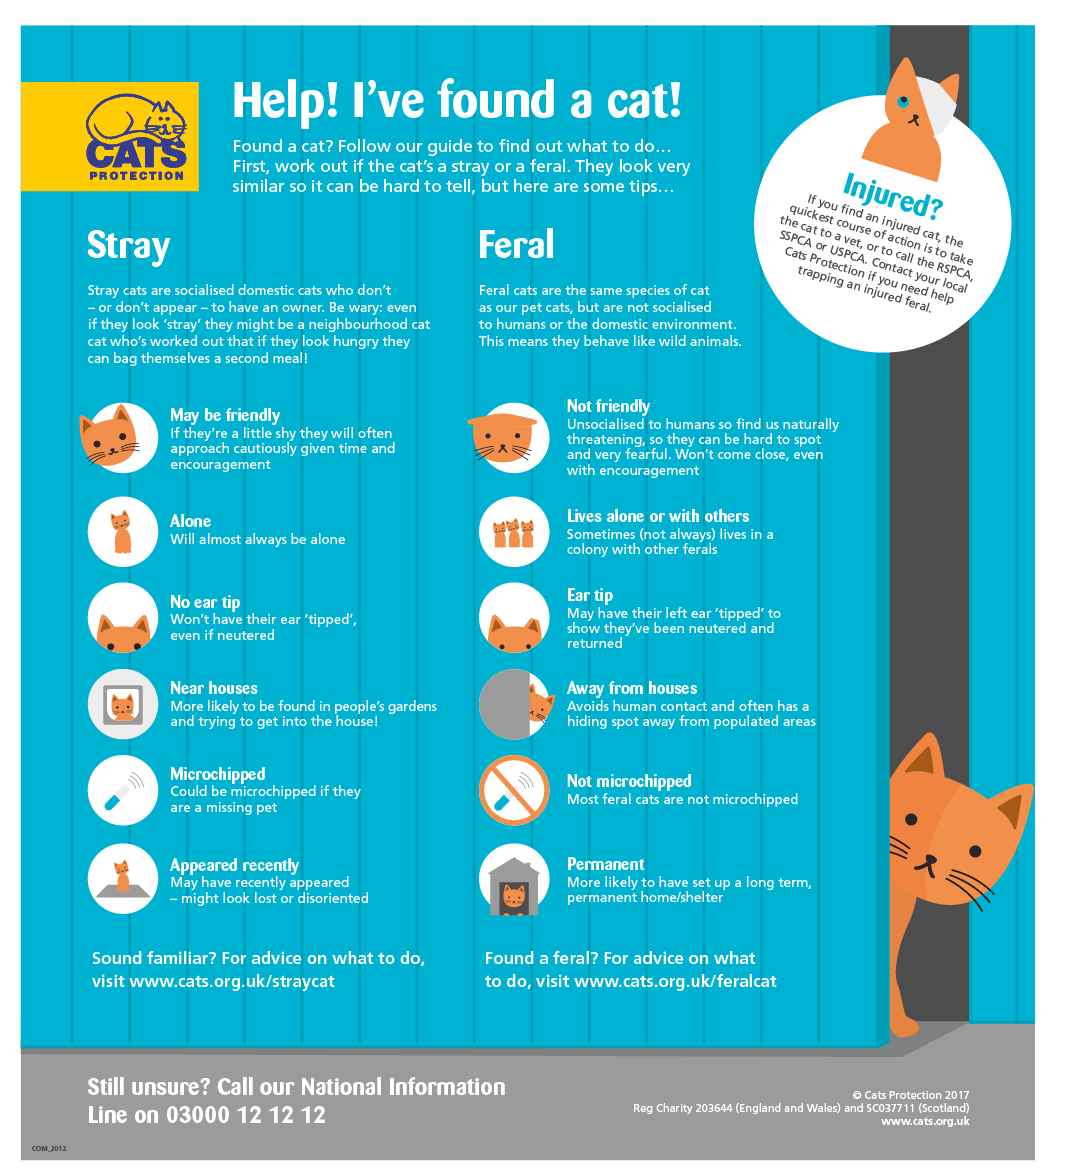 What to do if a cat has unlearned what it was taught 11